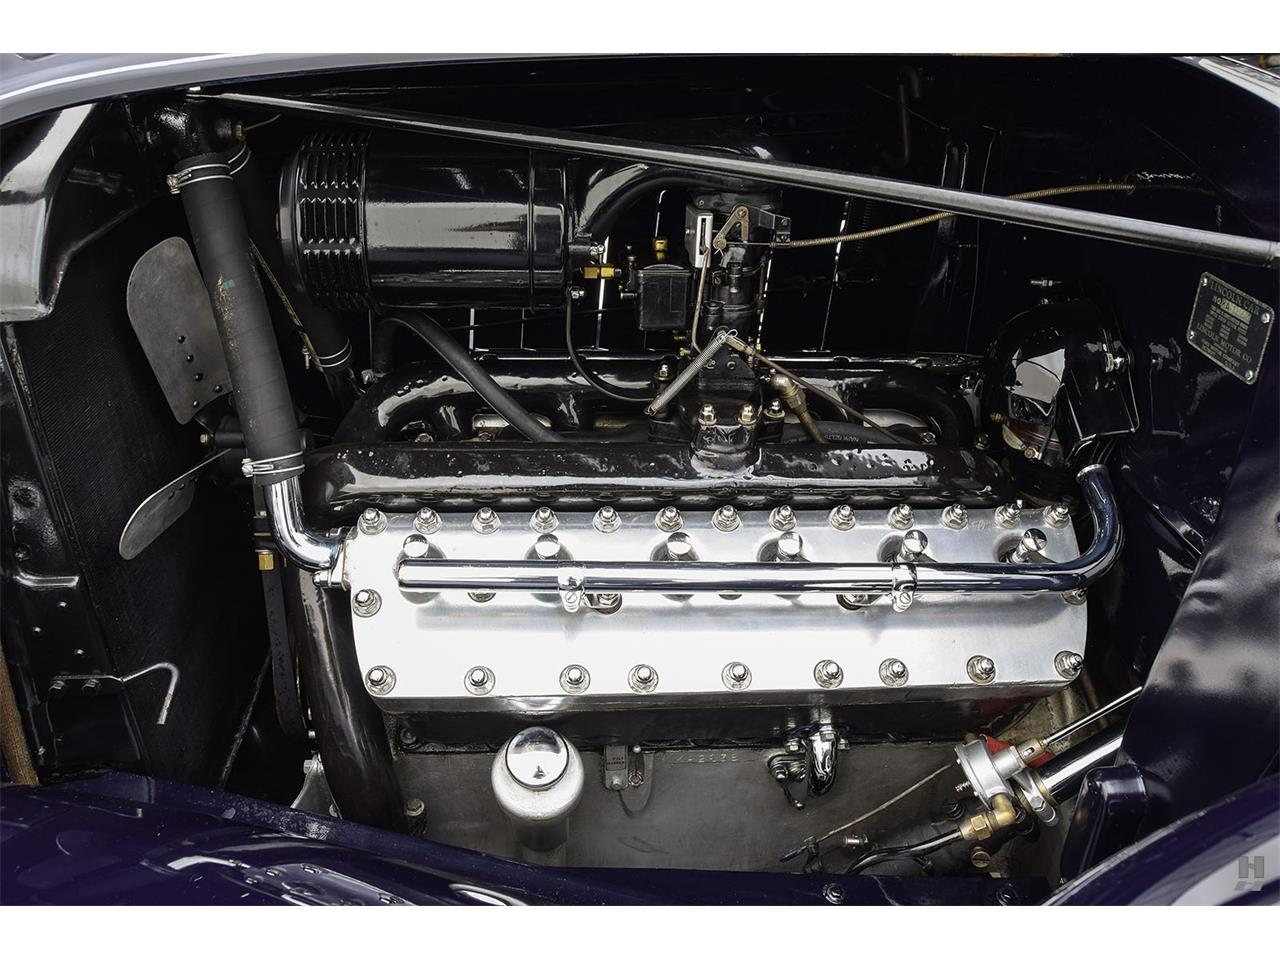 Large Picture of 1934 Lincoln Antique - $129,500.00 Offered by Hyman Ltd. Classic Cars - LBT2